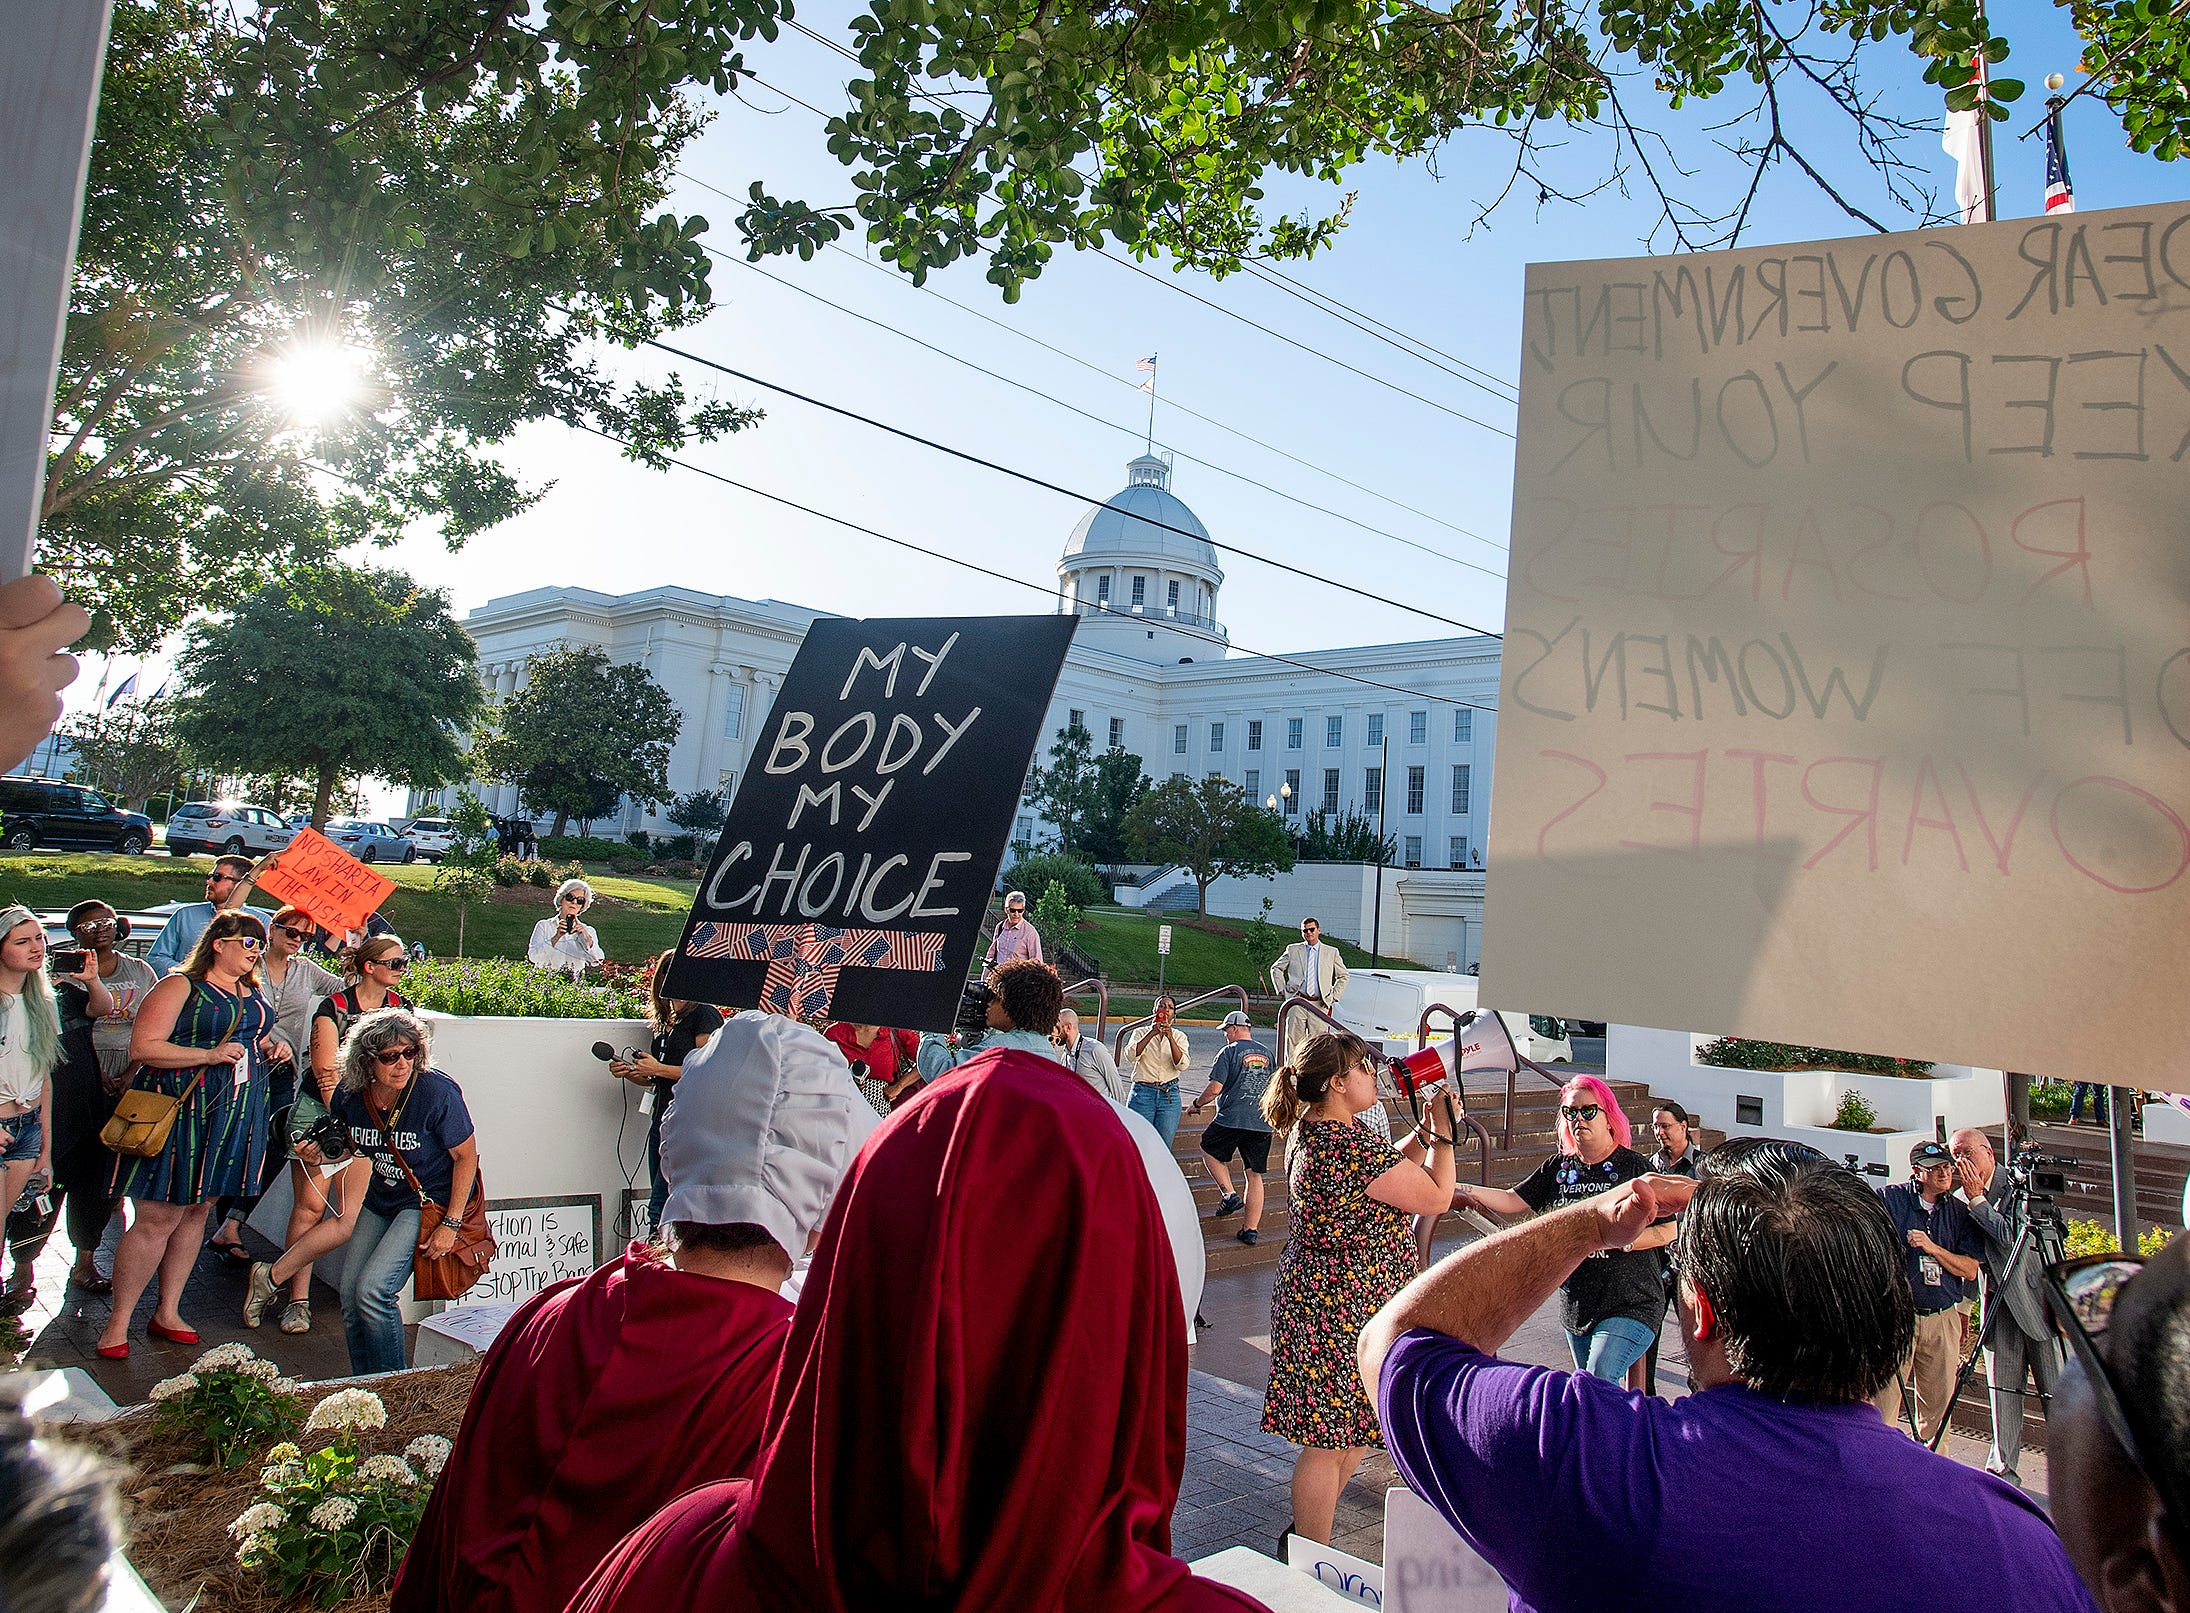 Lucia Hermo, with megaphone, leads chants during a rally against HB314, the near-total ban on abortion bill, outside of the Alabama Statehouse in Montgomery, Ala., on Tuesday May 14, 2019.